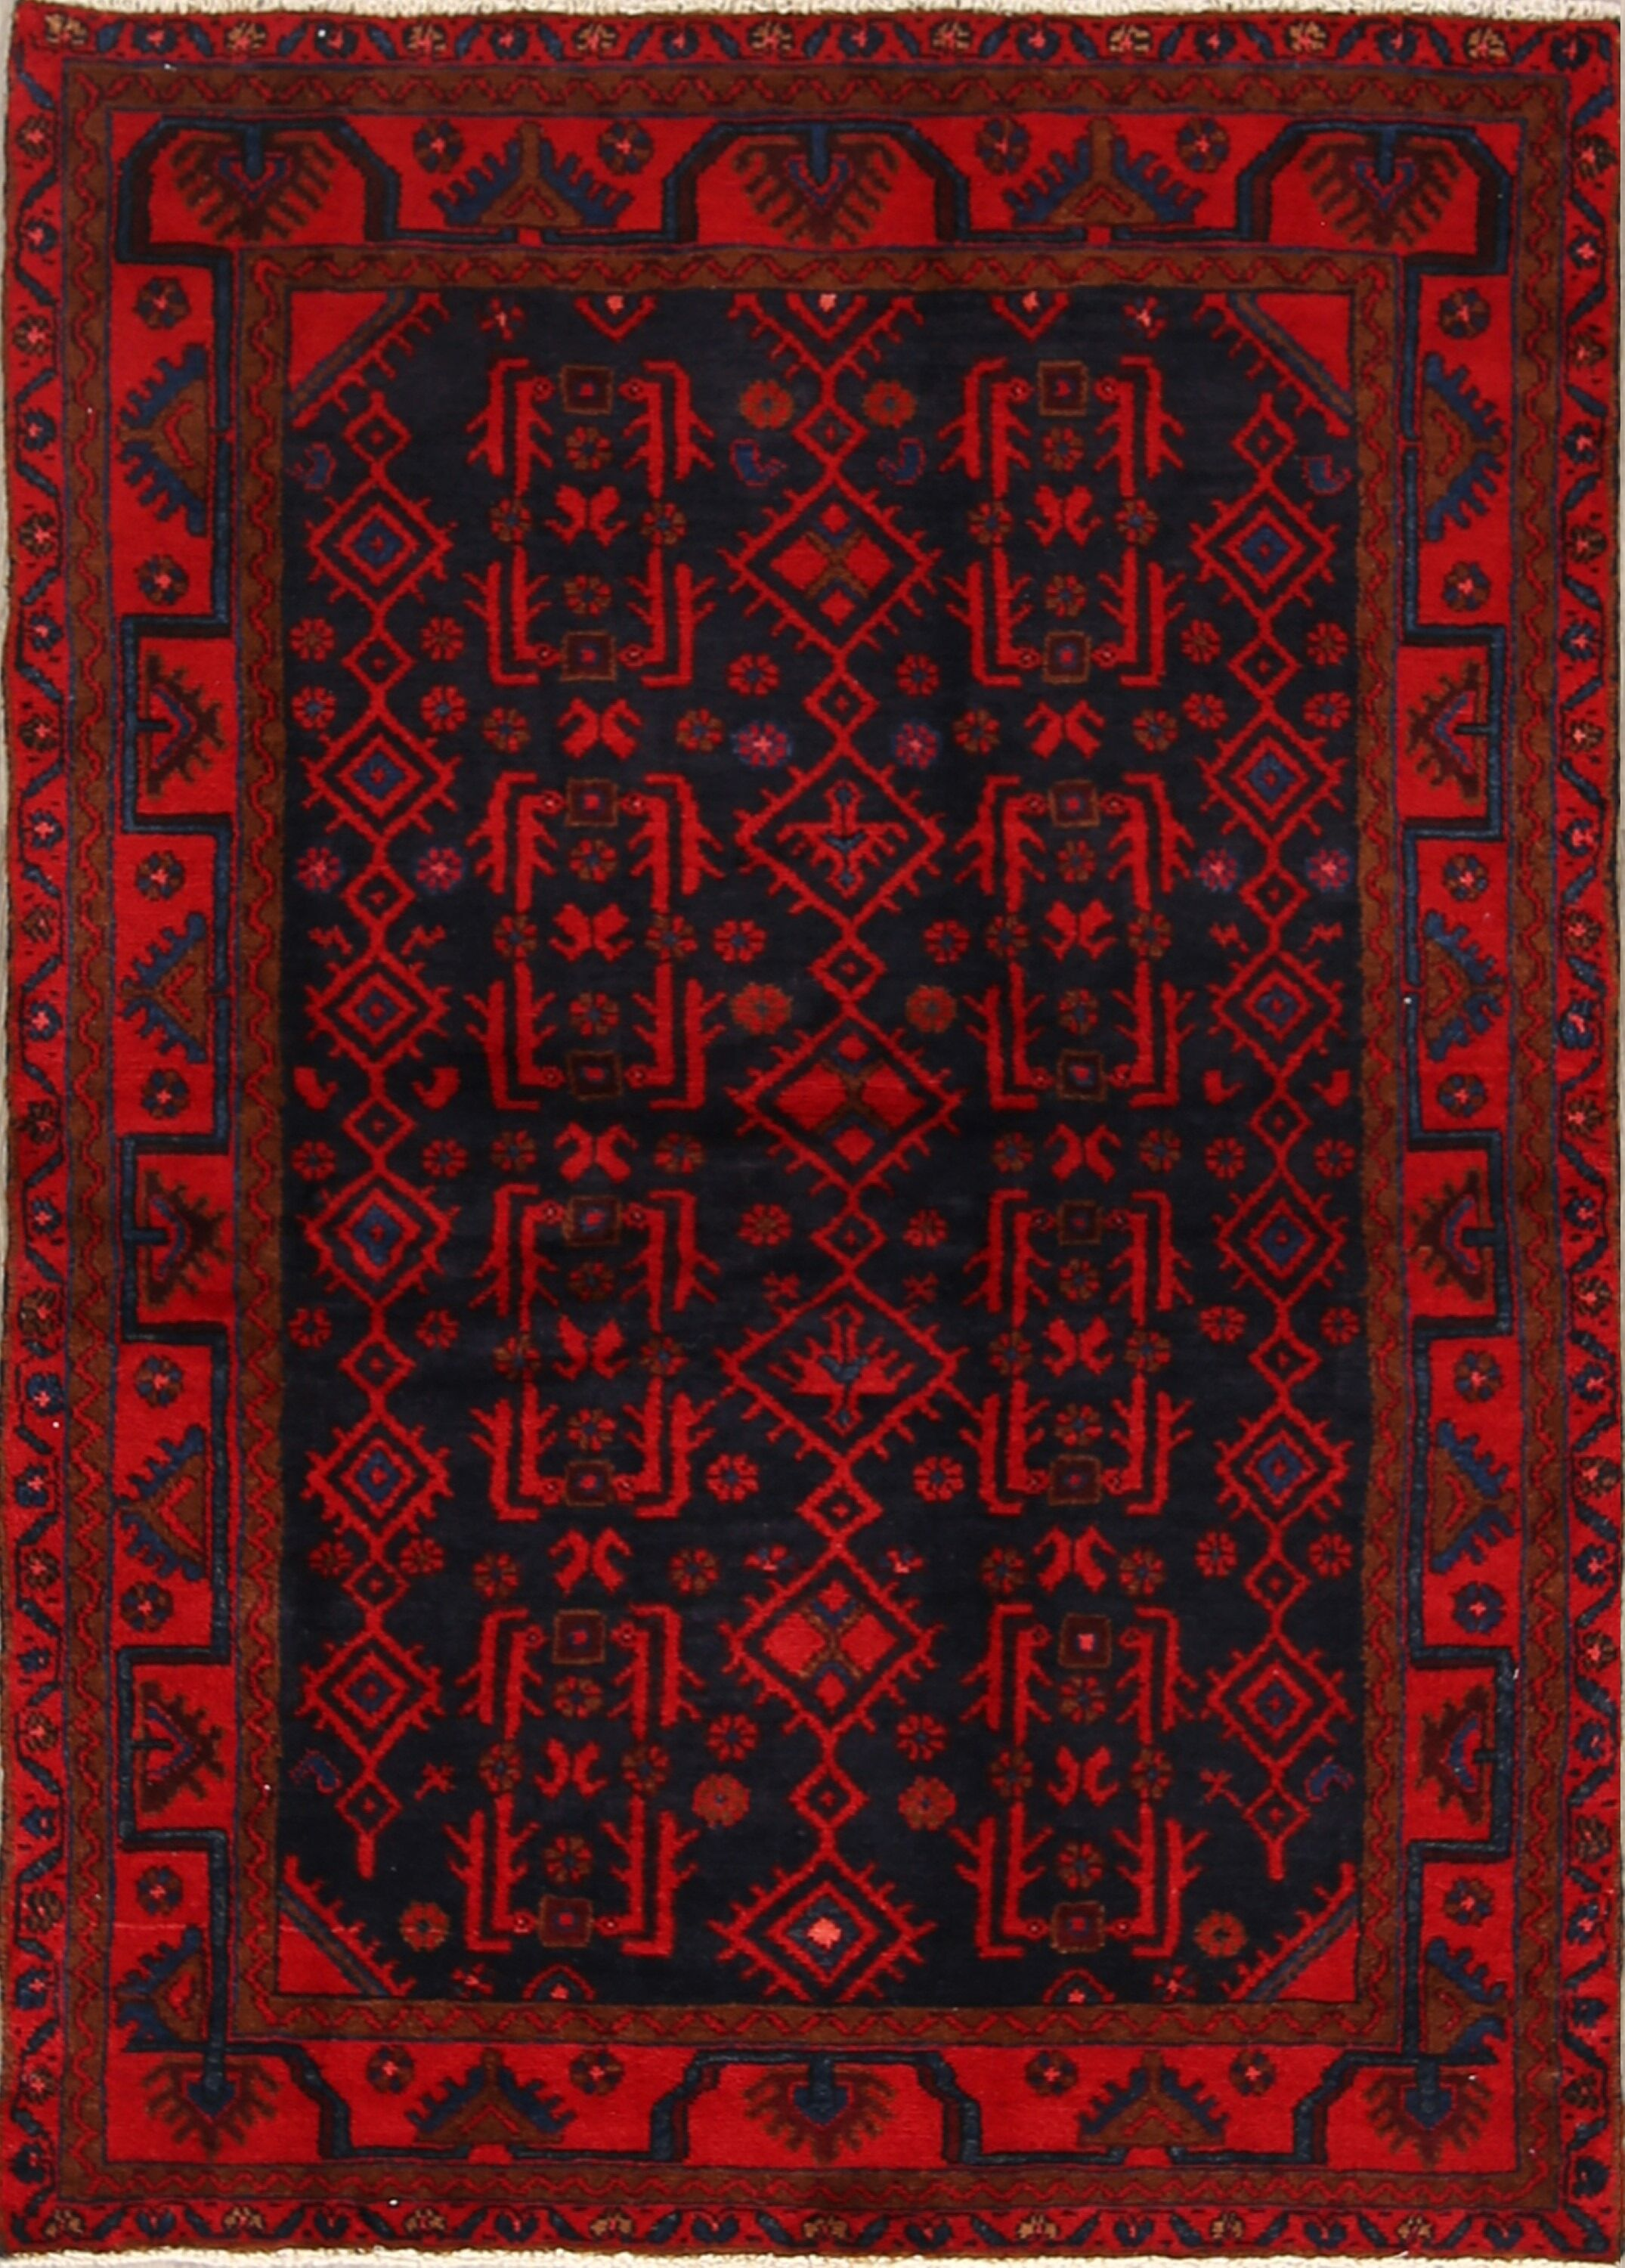 One-of-a-Kind Traditional All Over Nahavand Hamedan Persian Hand-Knotted 3'11